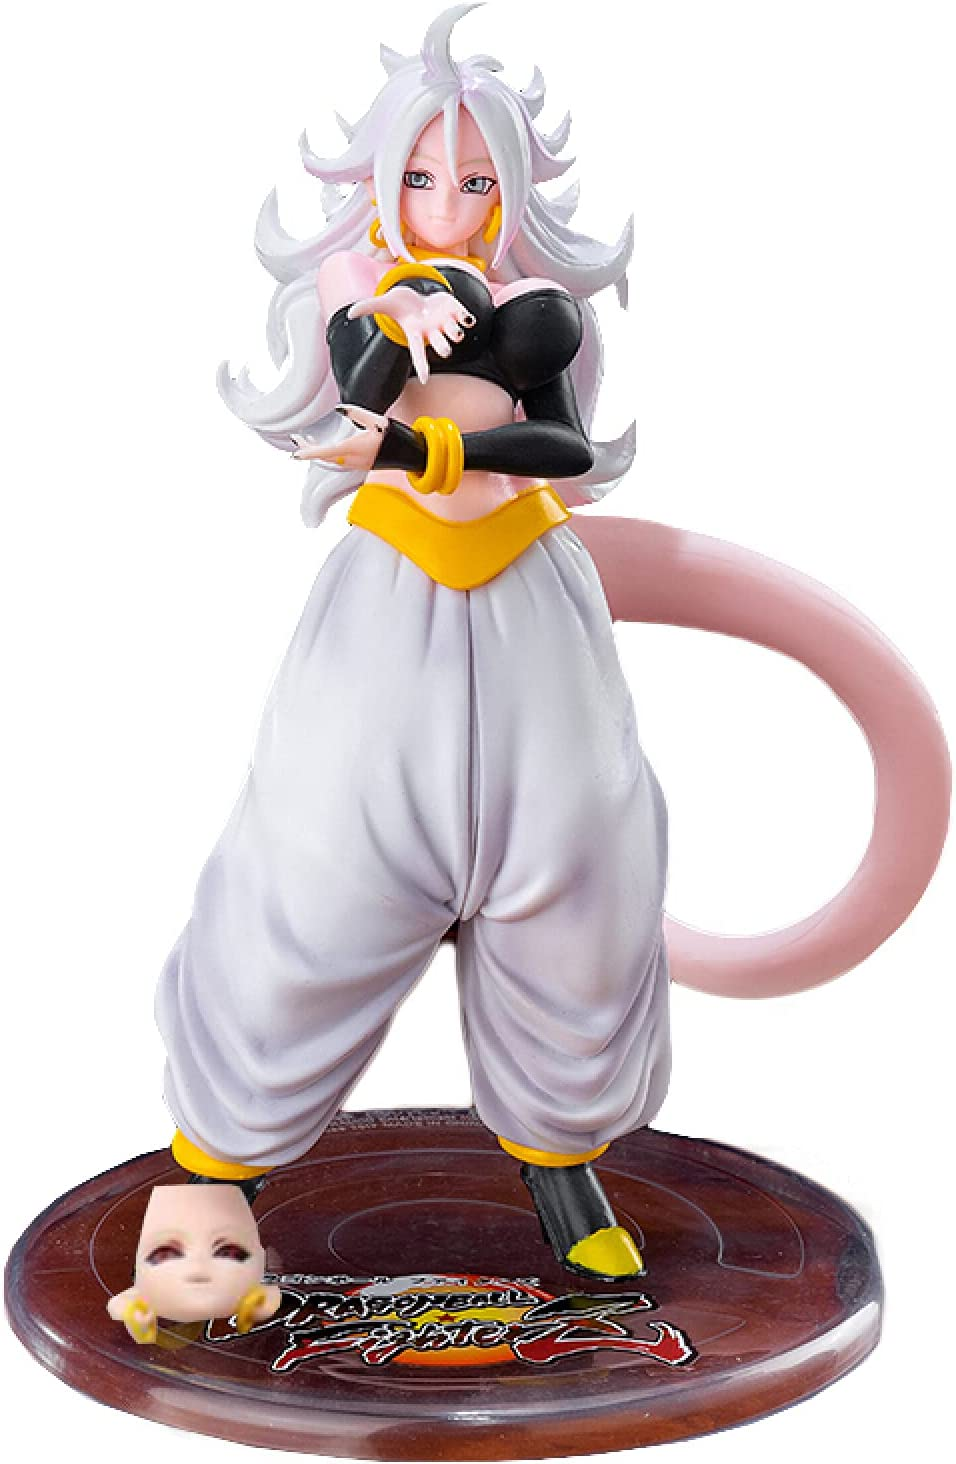 23Cm Dragon Ball Z Mh Gols Android 21 Action Anime Buu High material Majin New mail order PVC